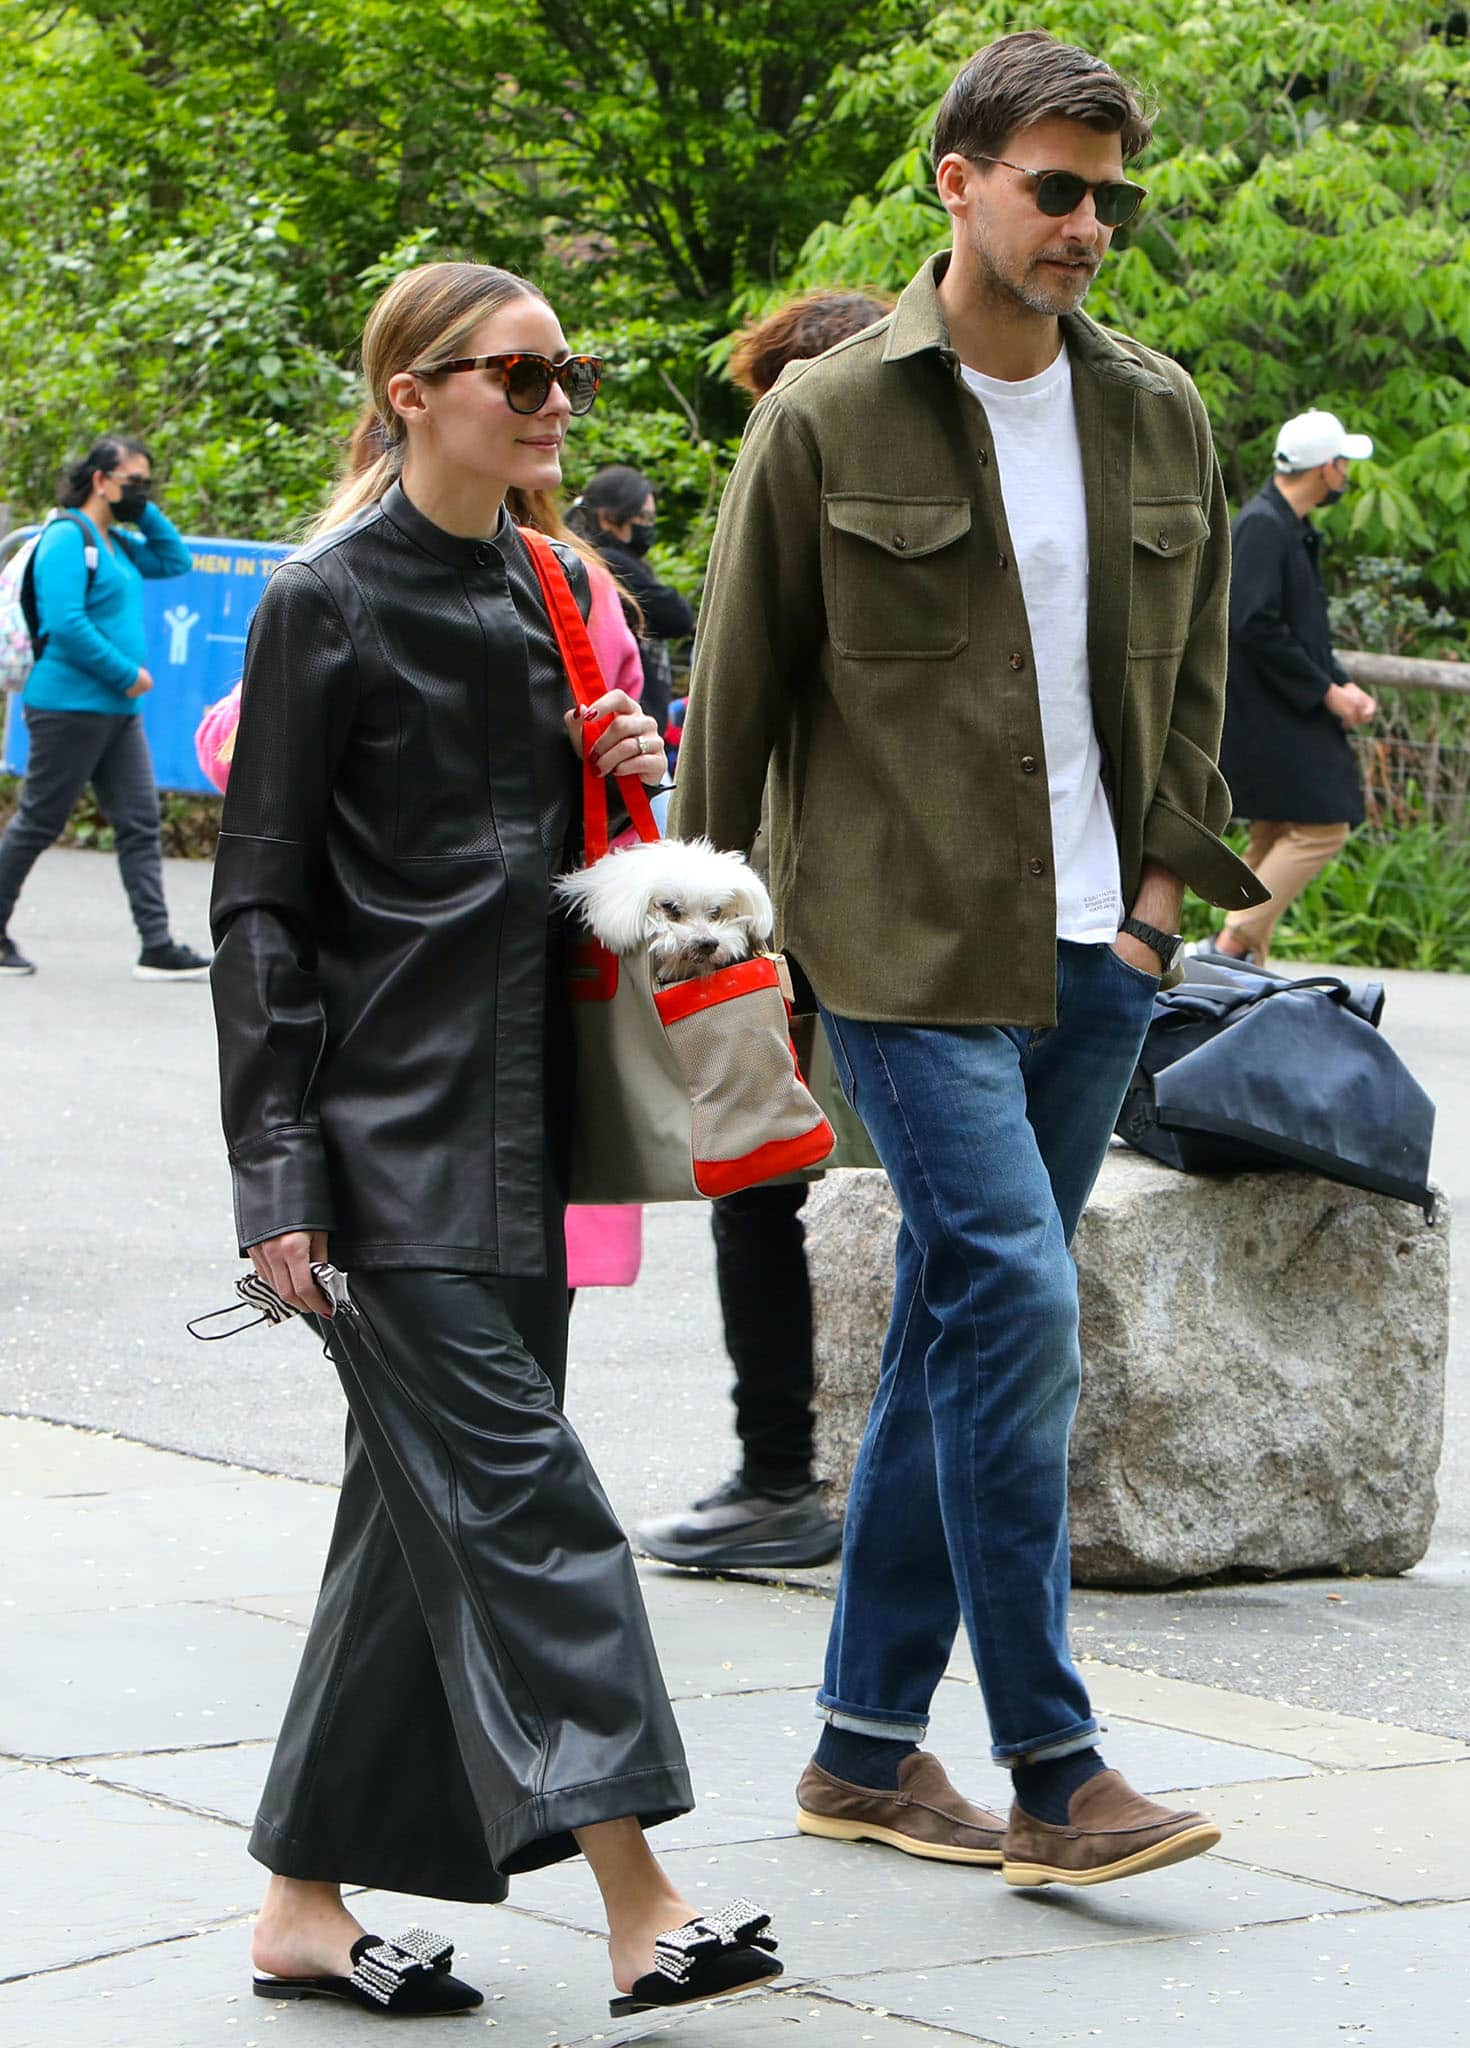 Olivia Palermo and husband Johannes Huebl take their dog Mr. Butler to the Park in Dumbo, Brooklyn on May 10, 2021